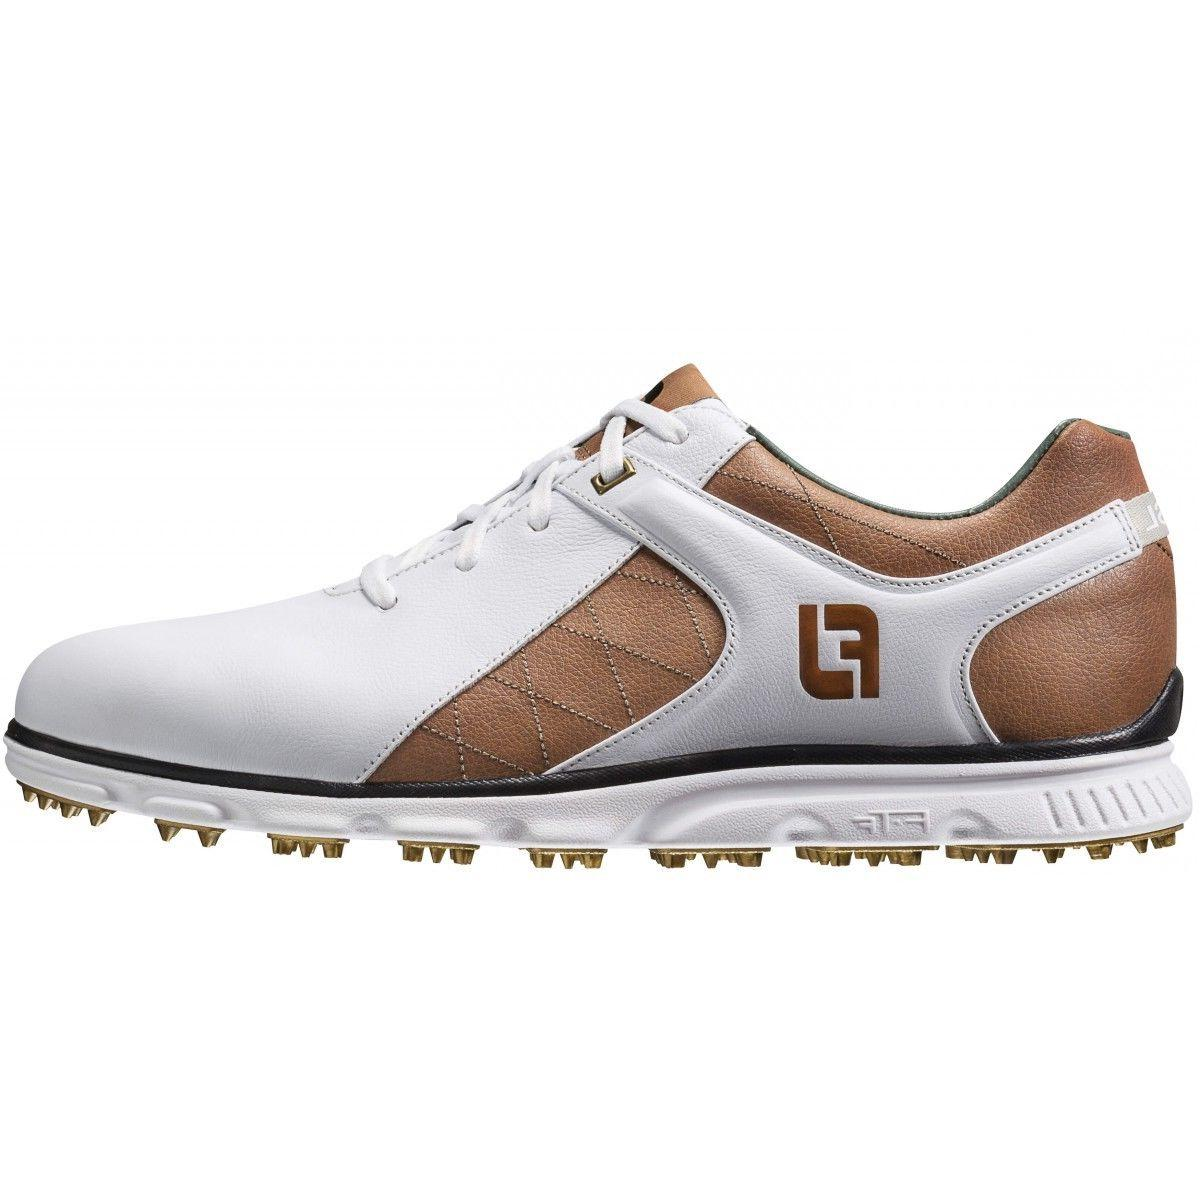 CLOSEOUT! NEW FootJoy Mens Pro SL Spikeless Golf Shoes White